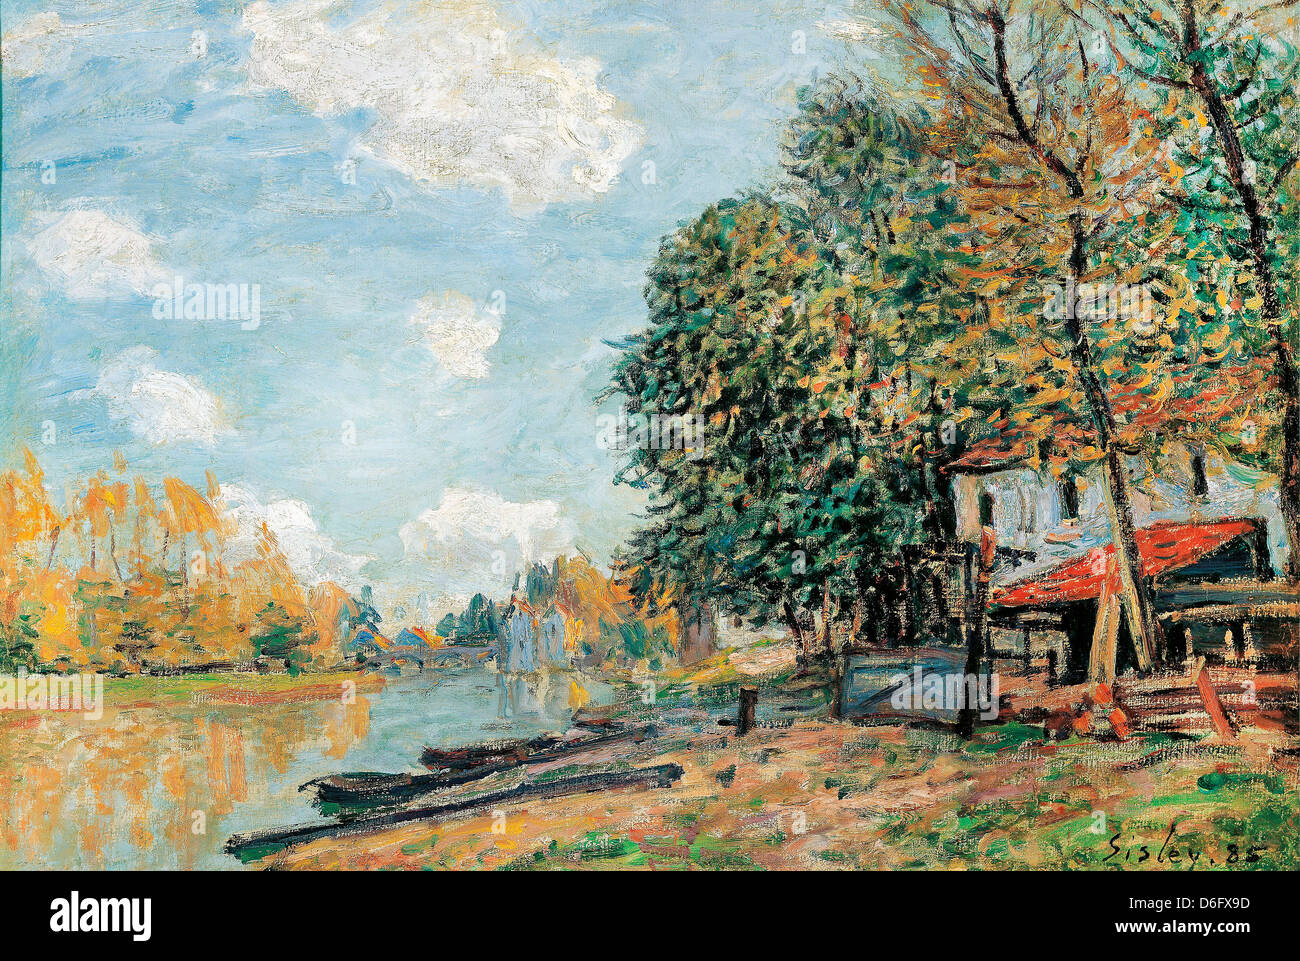 Alfred Sisley, Moret: The Banks of the River Loing, 1877 Oil on canvas. Albertina, Vienna, Austria - Stock Image